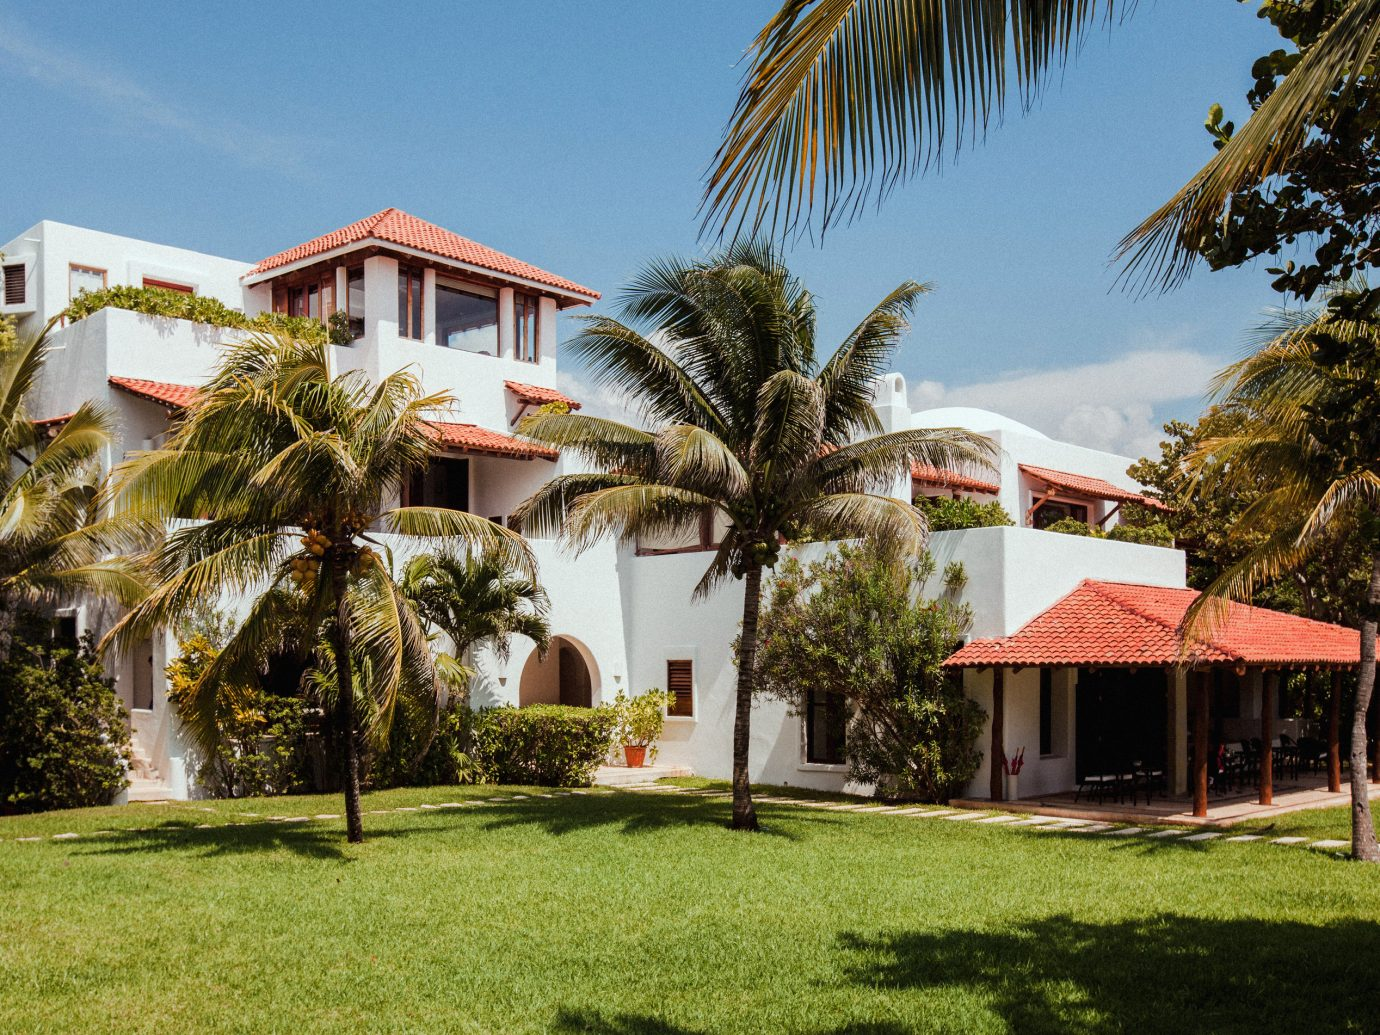 Exterior of Hotel Esencia in Tulum